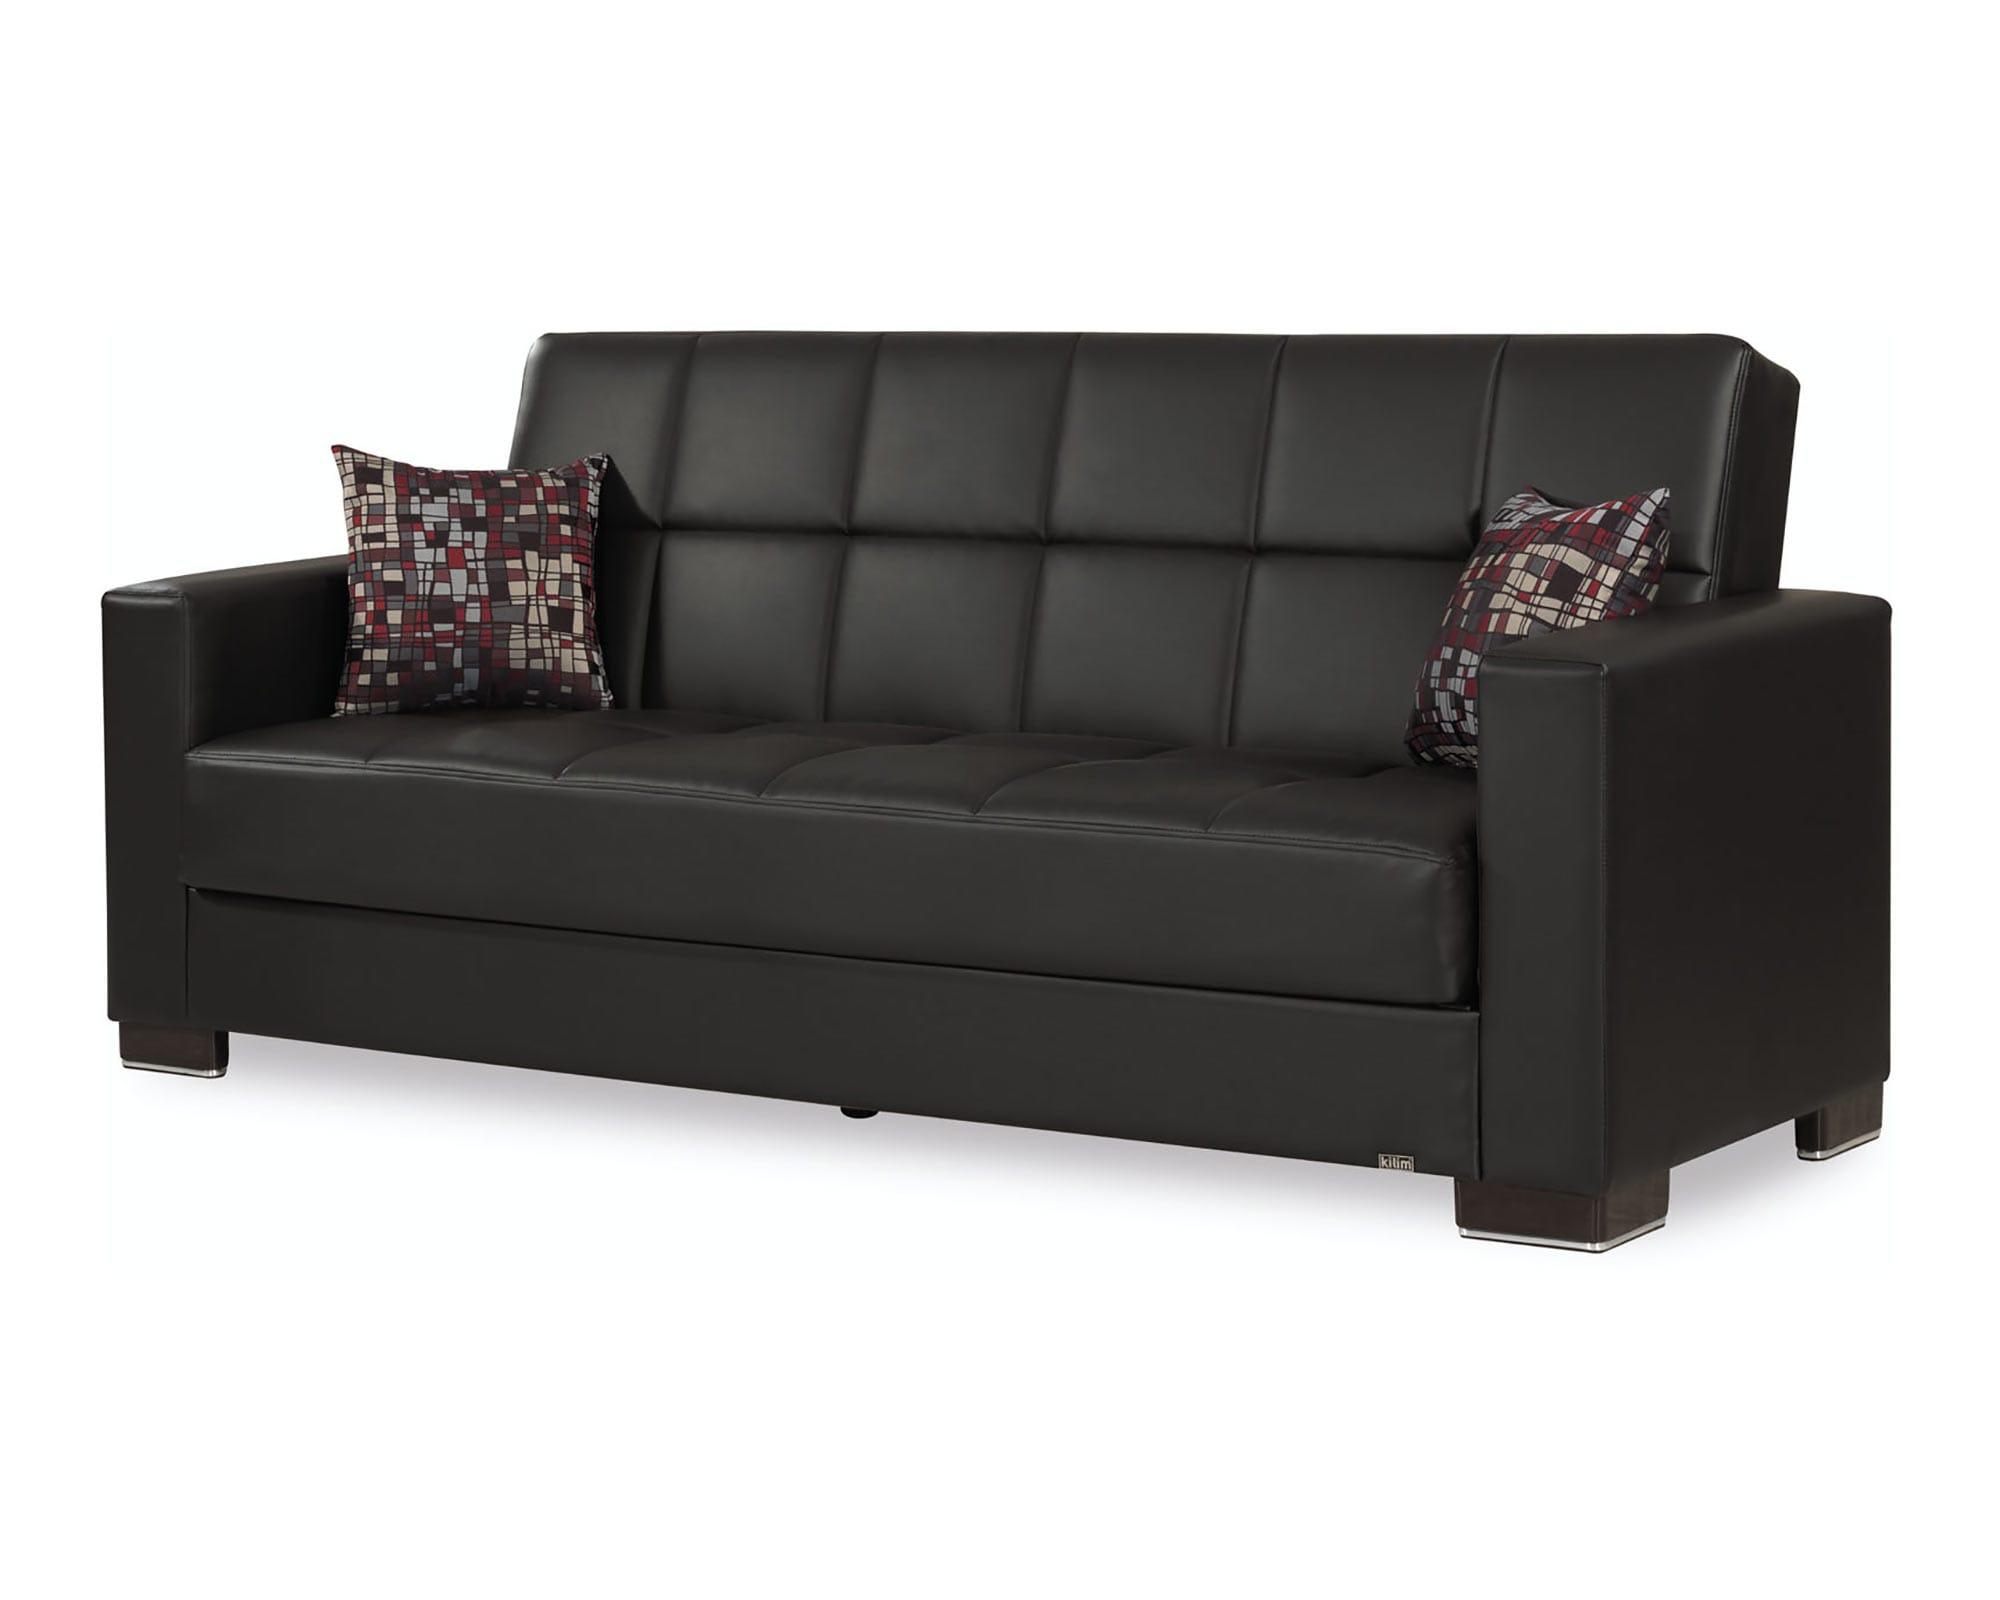 Armada Black PU Leather Sofa Bed by Casamode